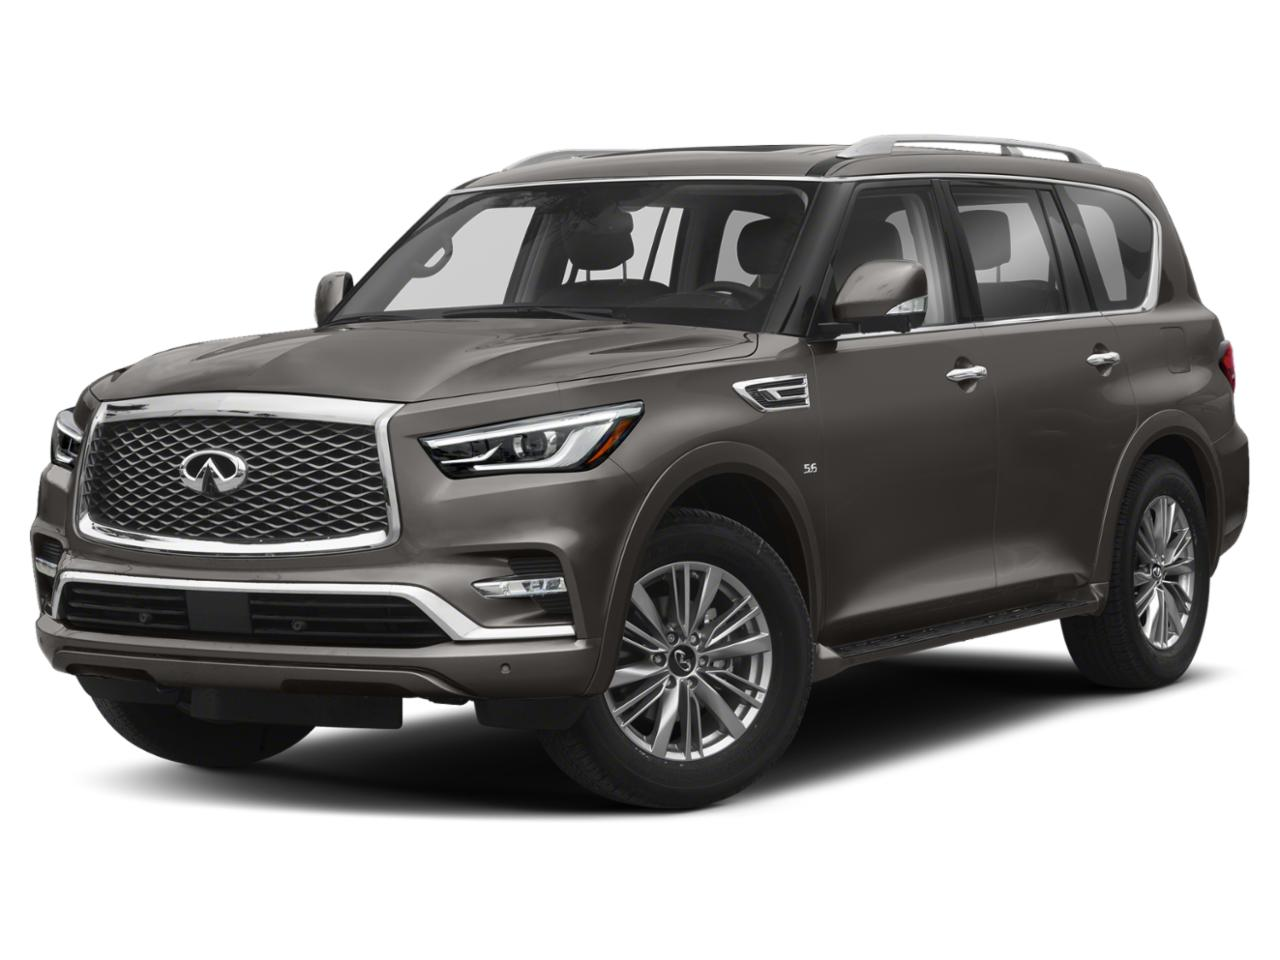 2019 INFINITI QX80 Vehicle Photo in Moon Township, PA 15108